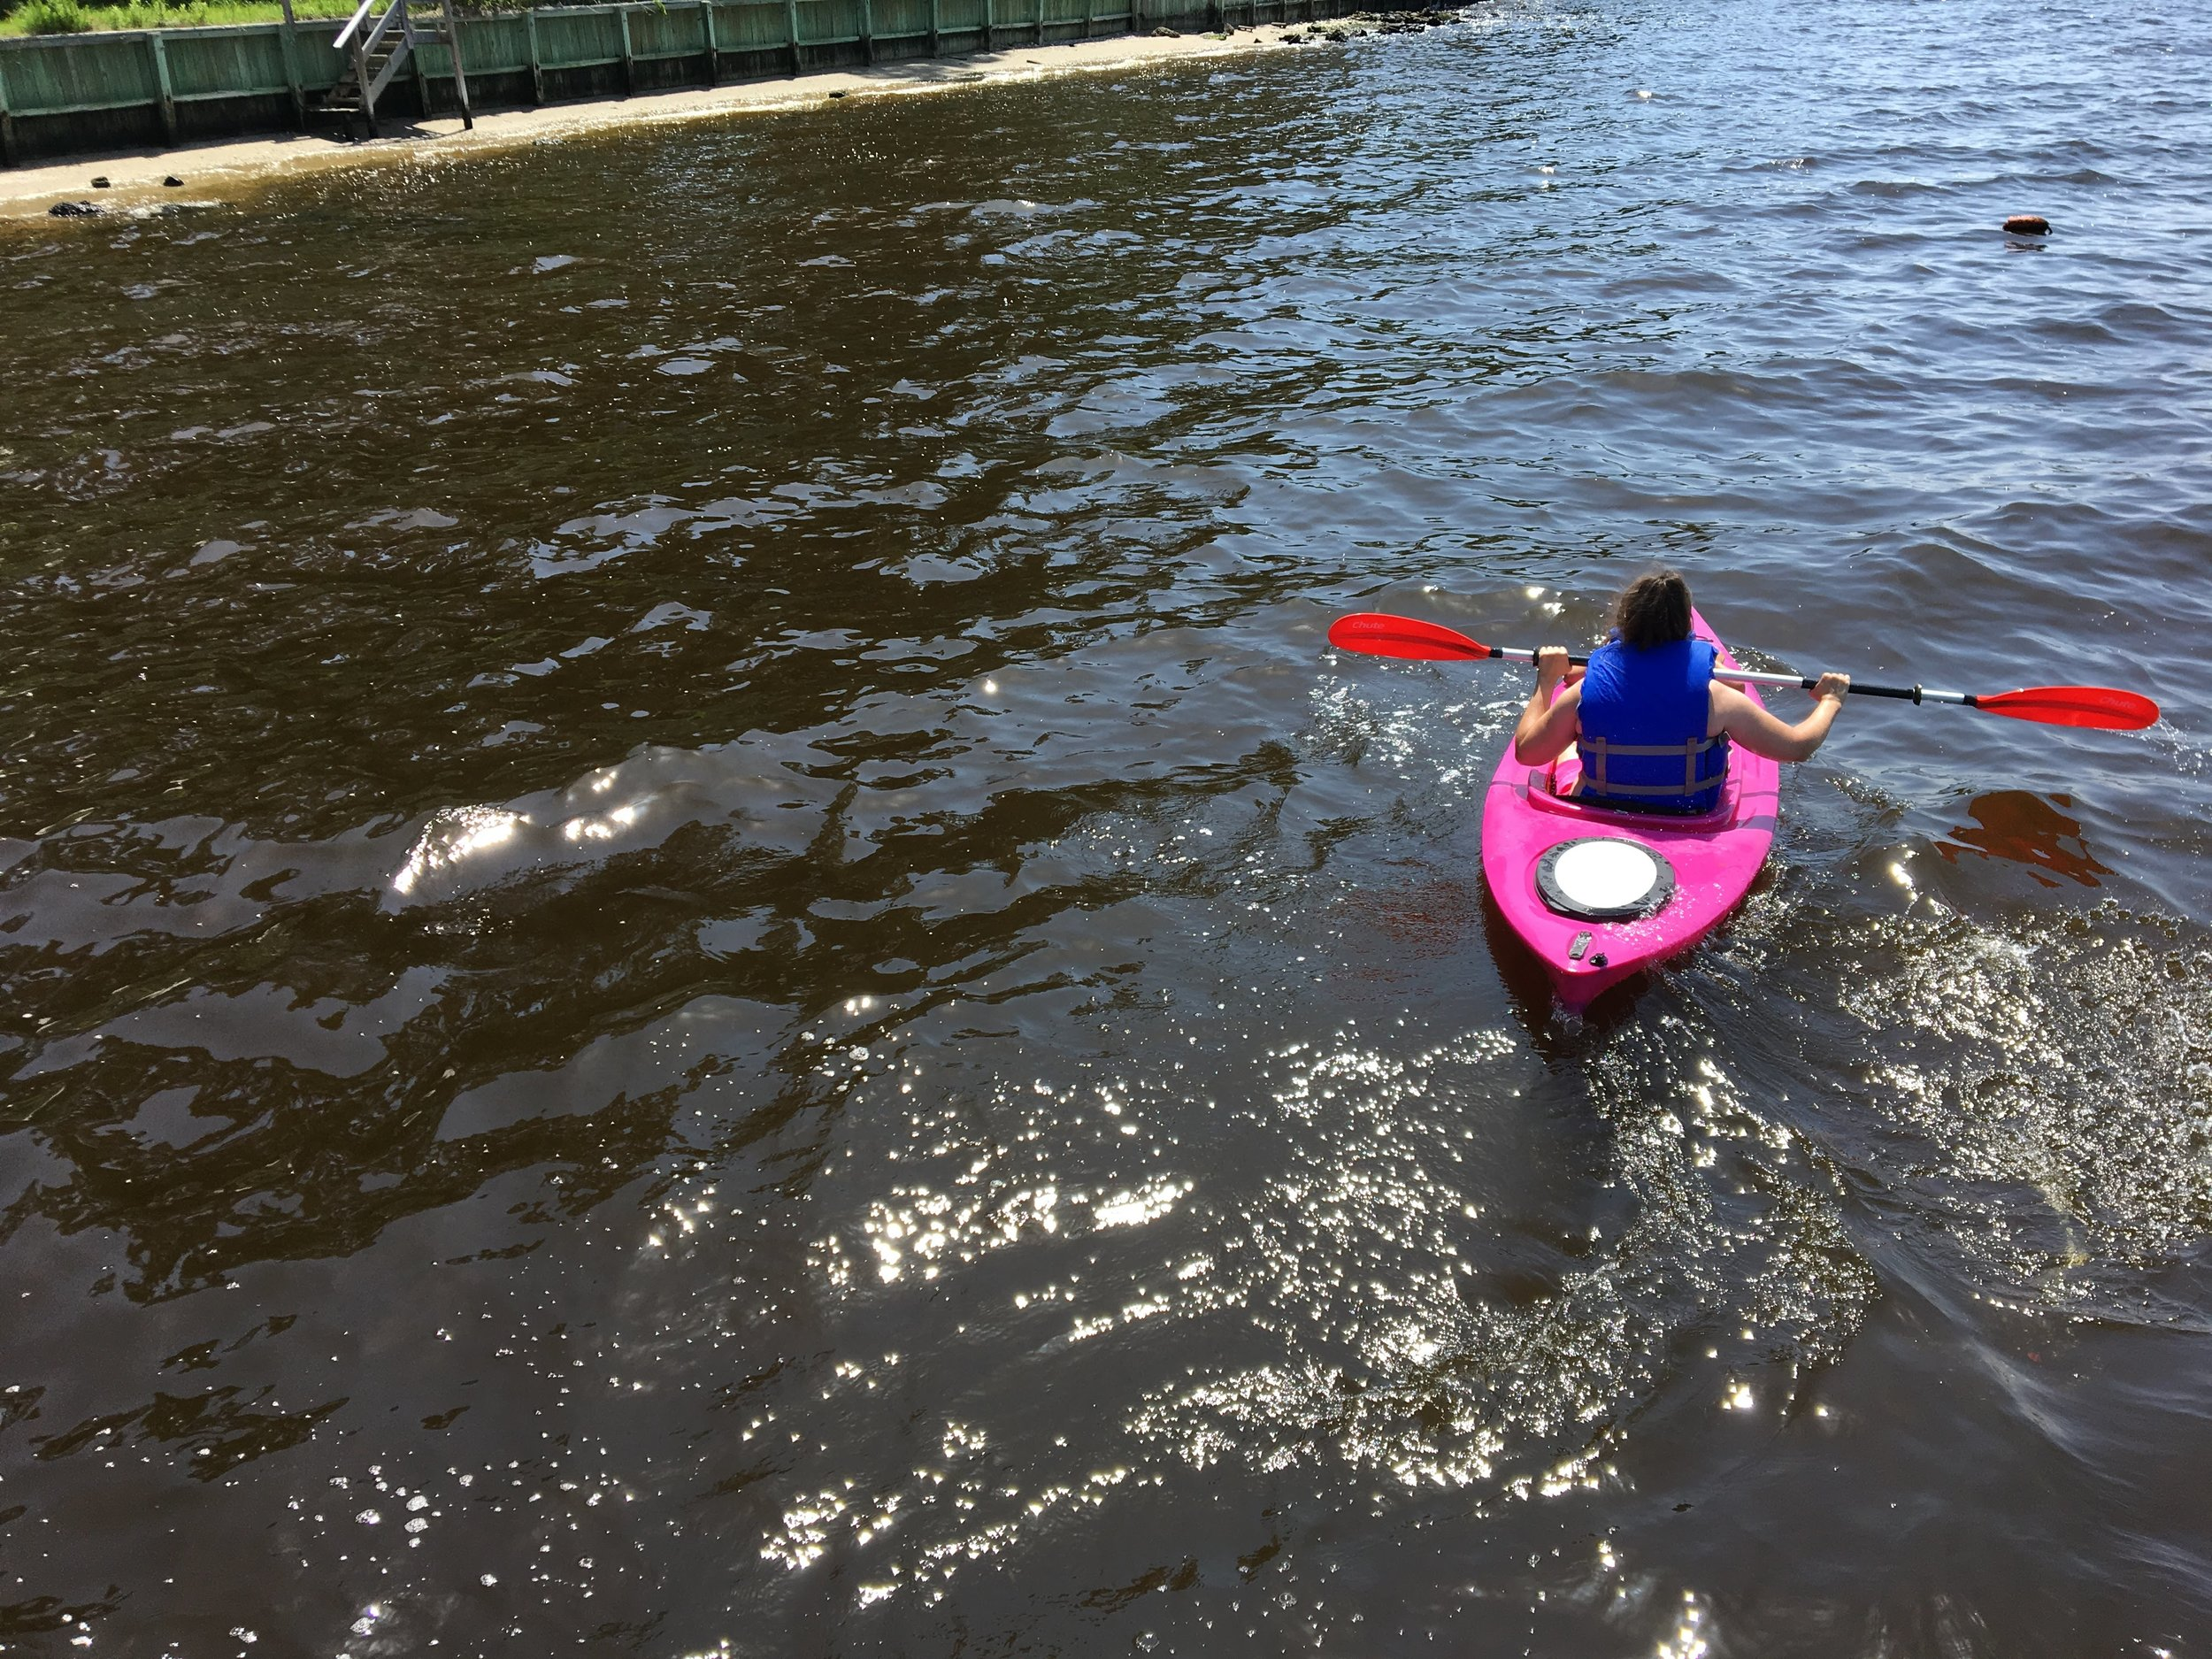 So far, this is the best photo Noah has captured of me kayaking.